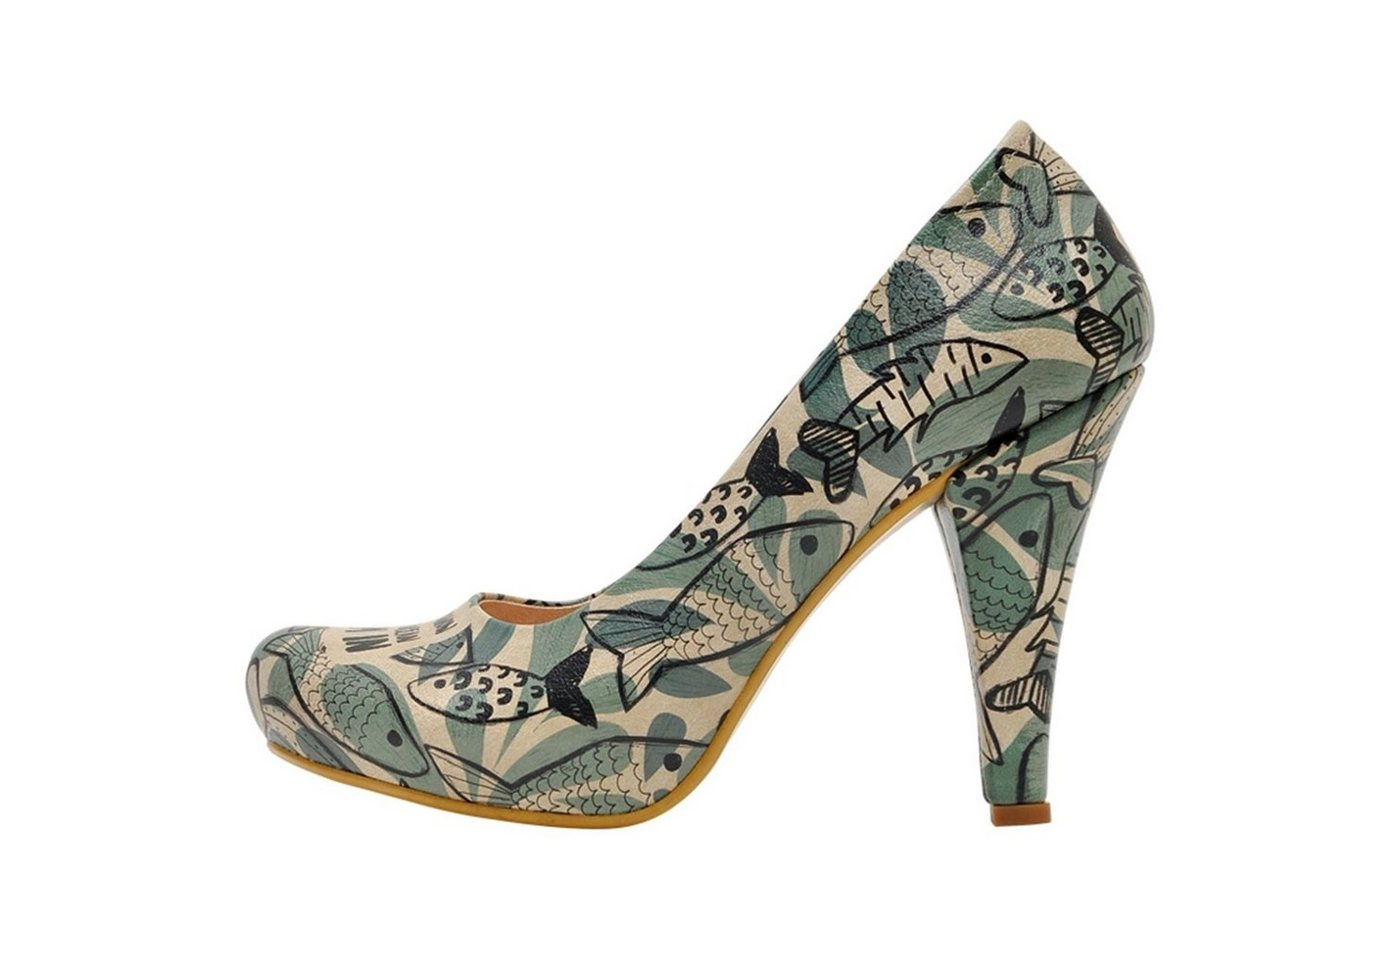 Damen DOGO »Ocean« High-Heel-Pumps Vegan bunt,  mehrfarbig | 08680544179657